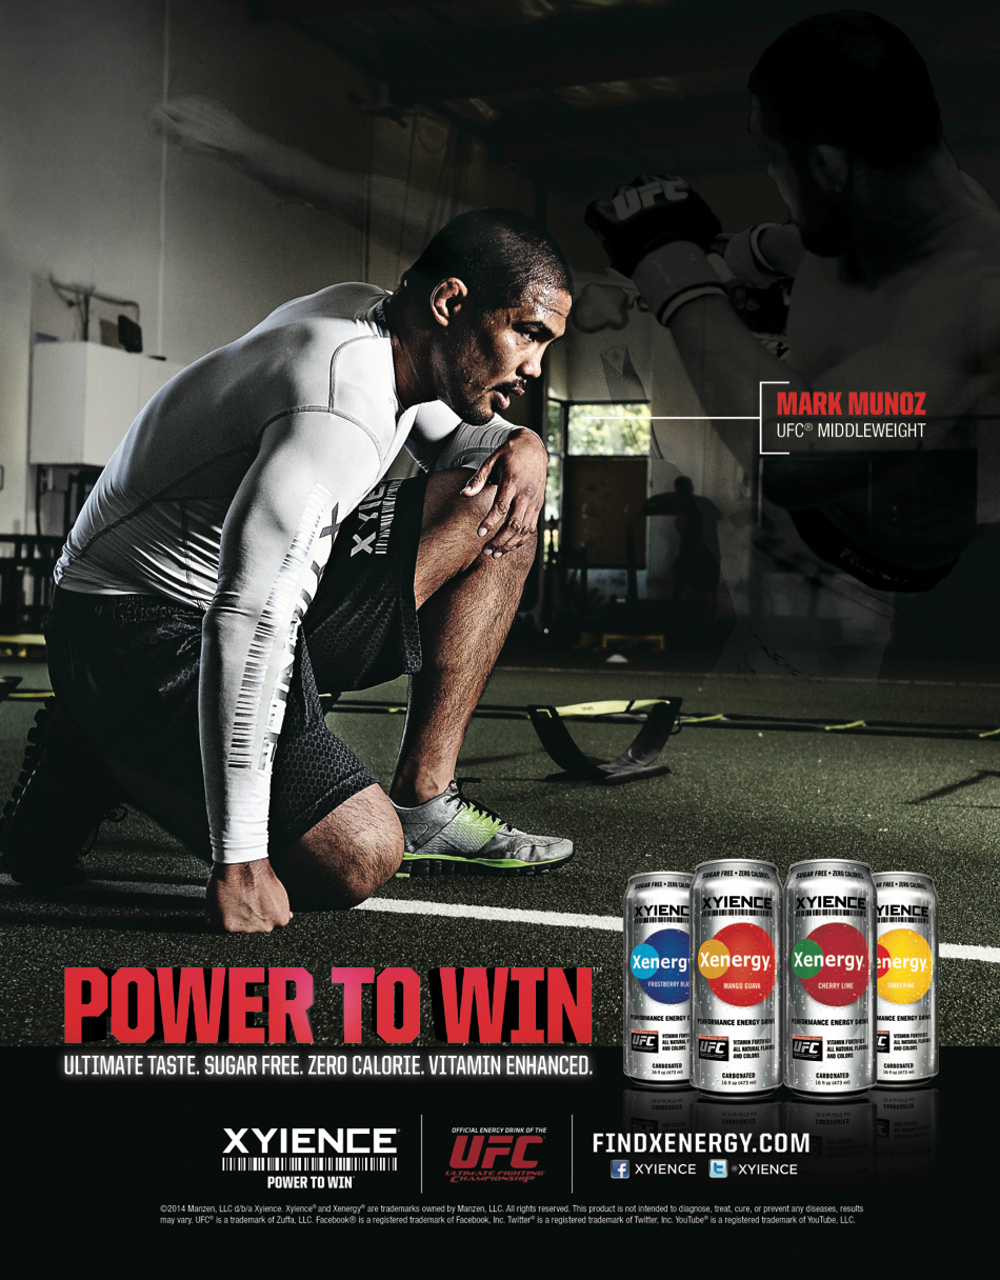 Xyience Ad edit 2013.jpg